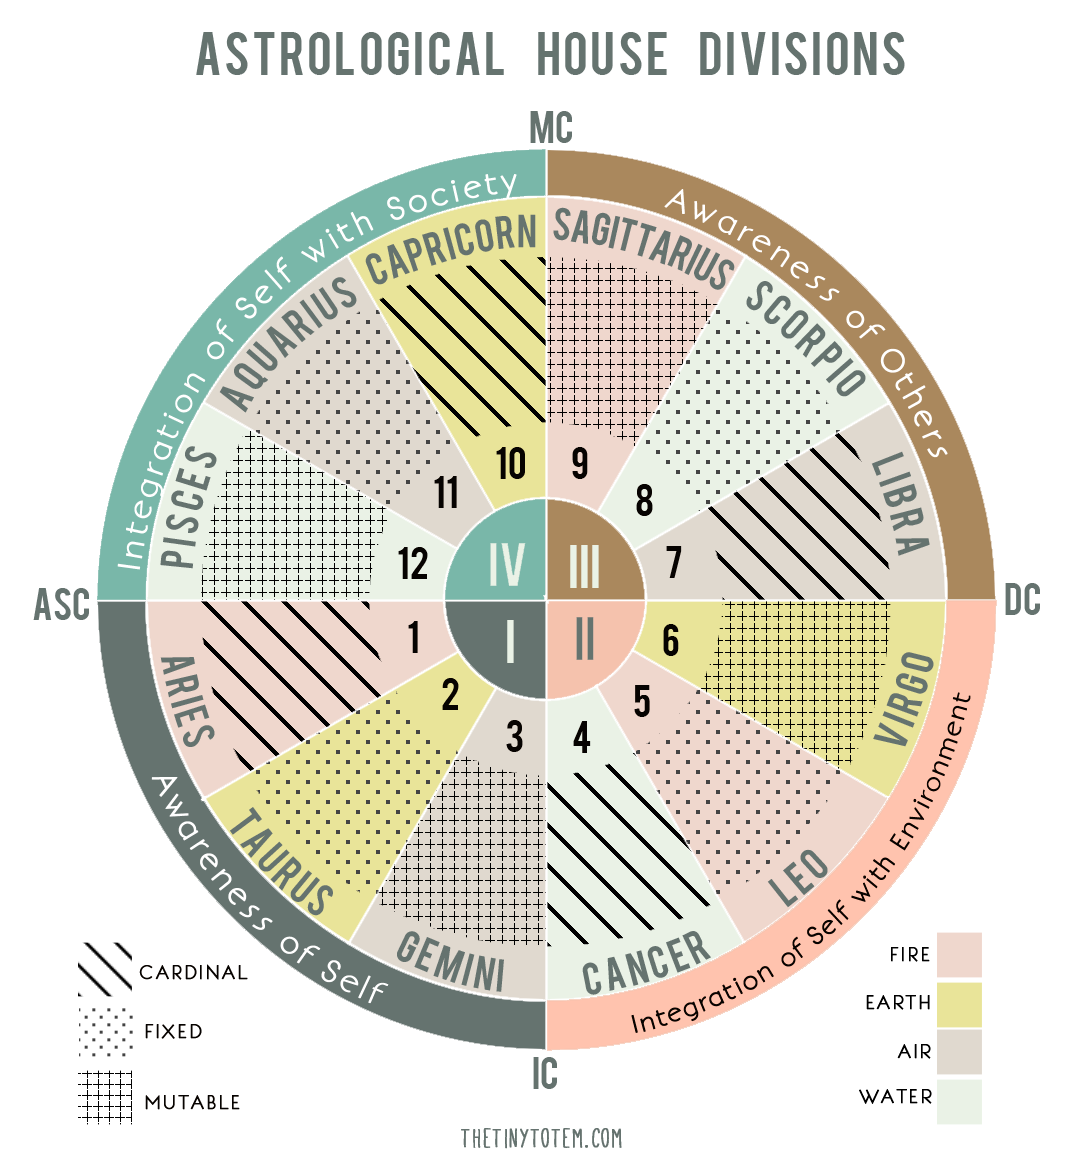 Astrology house divisions divination pinterest astrology house divisions nvjuhfo Choice Image